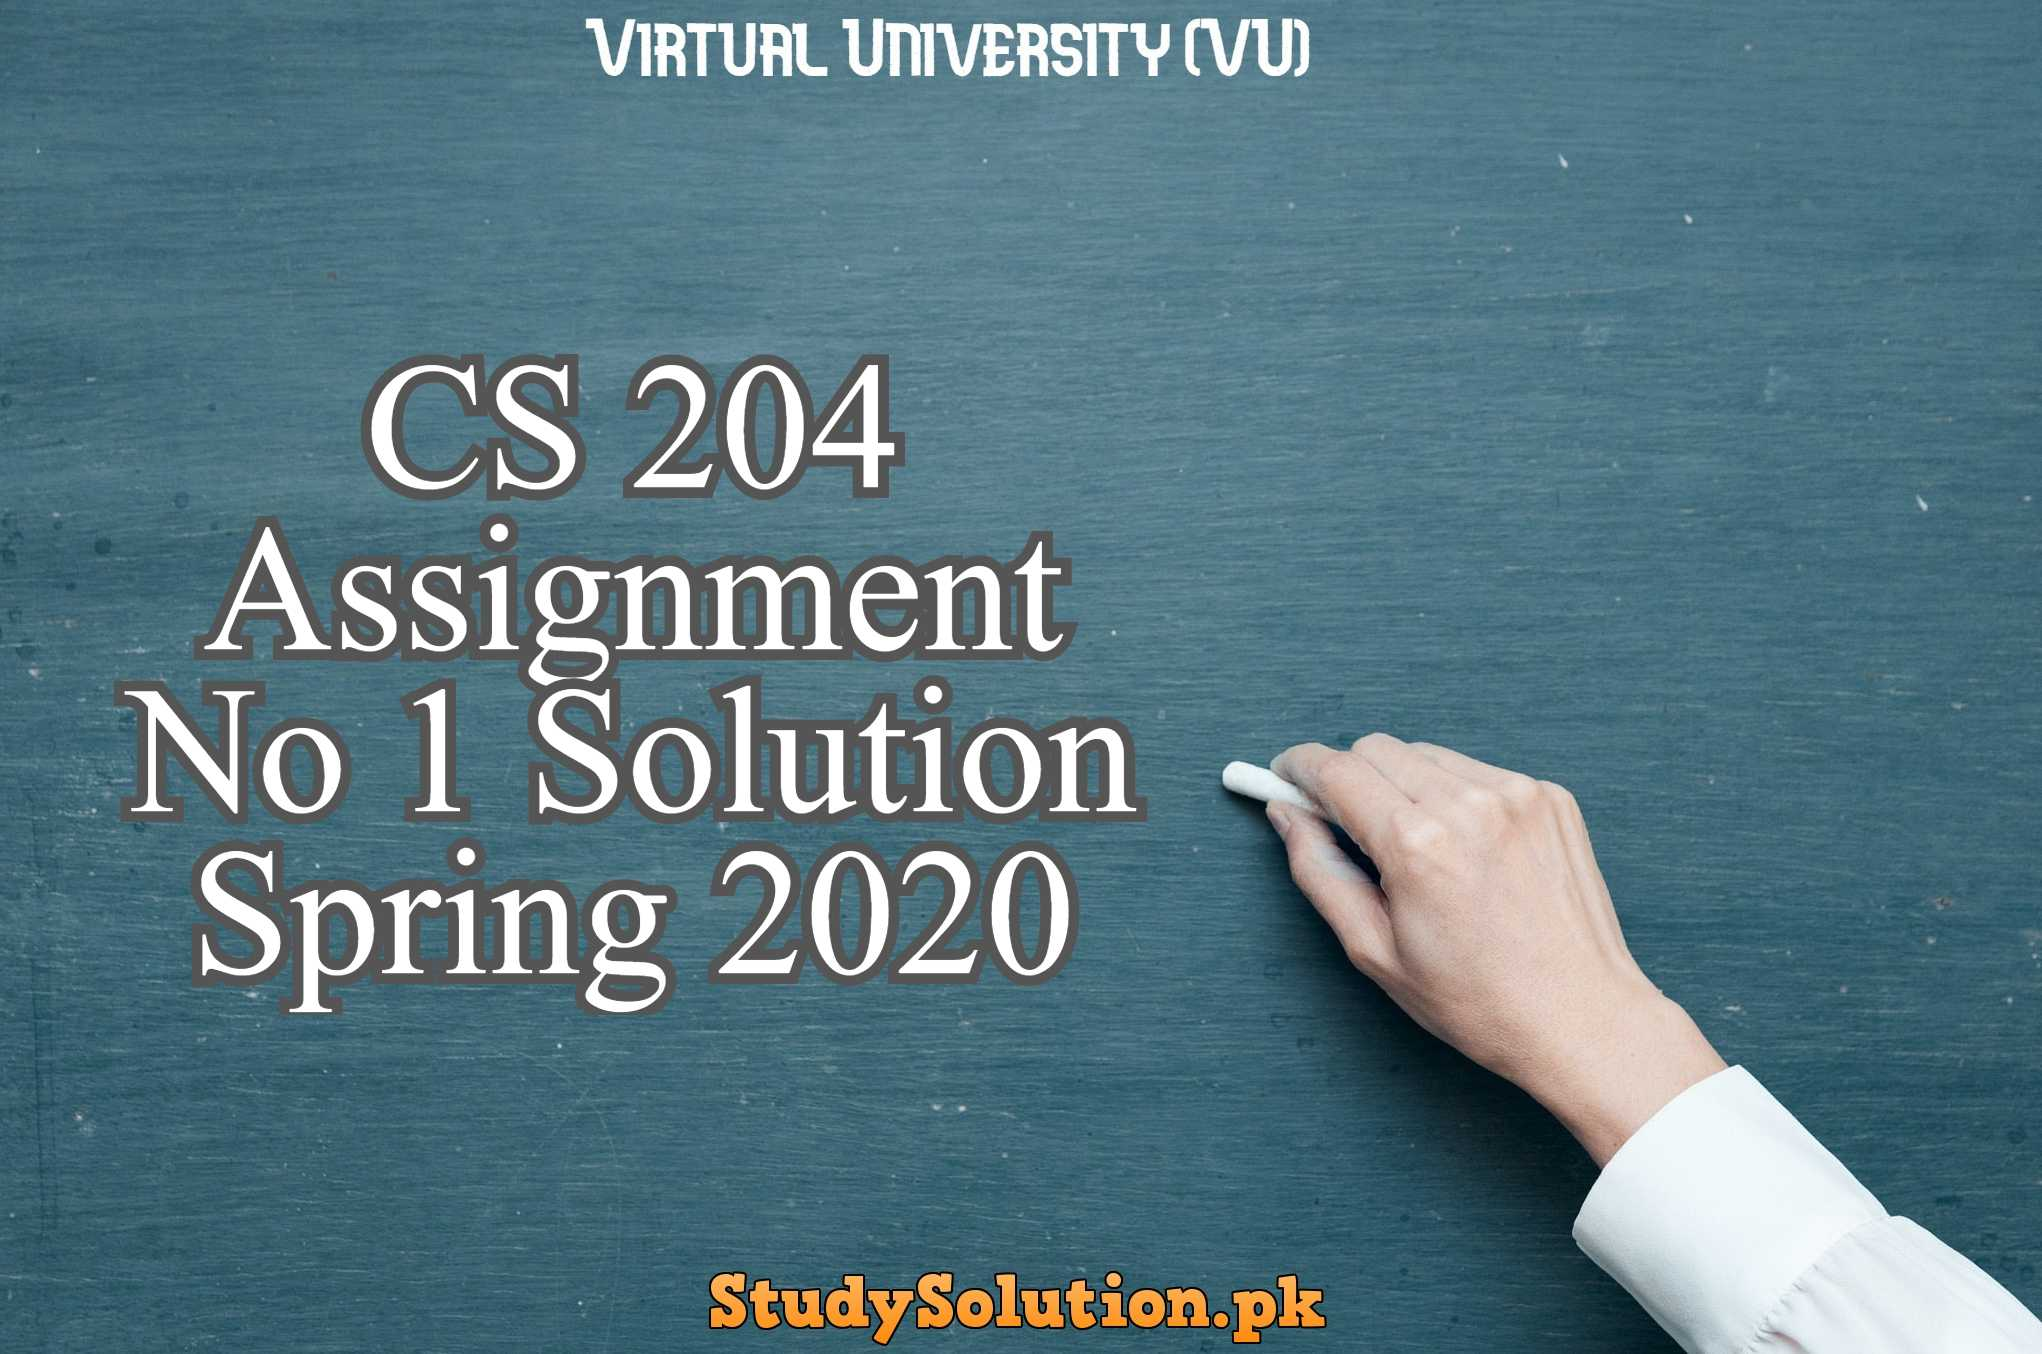 CS 204 Assignment No 1 Solution Spring 2020